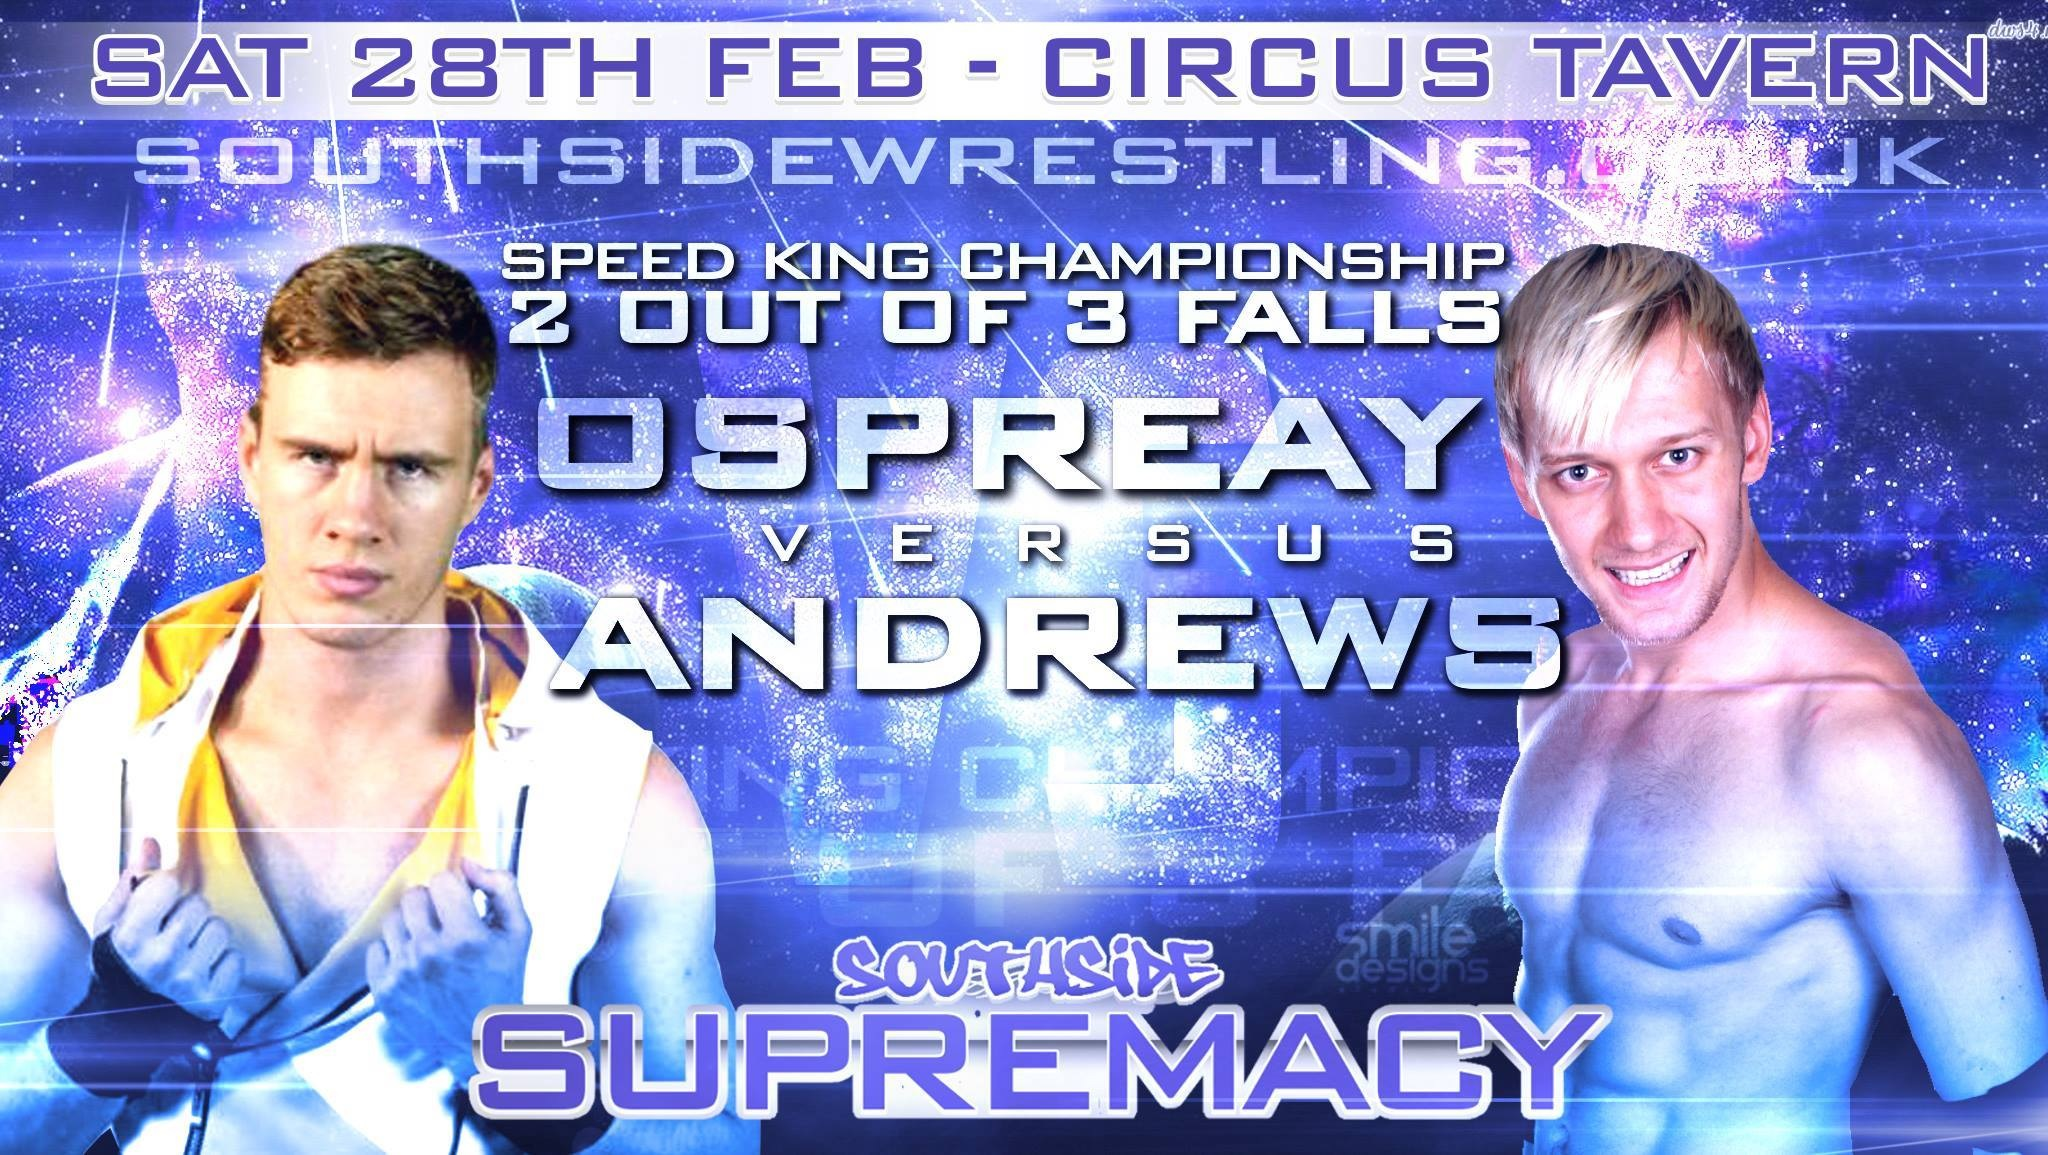 2 Out Of 3 Falls Championship Main Event Confirmed Southside Wrestling 'Supremacy 2015′